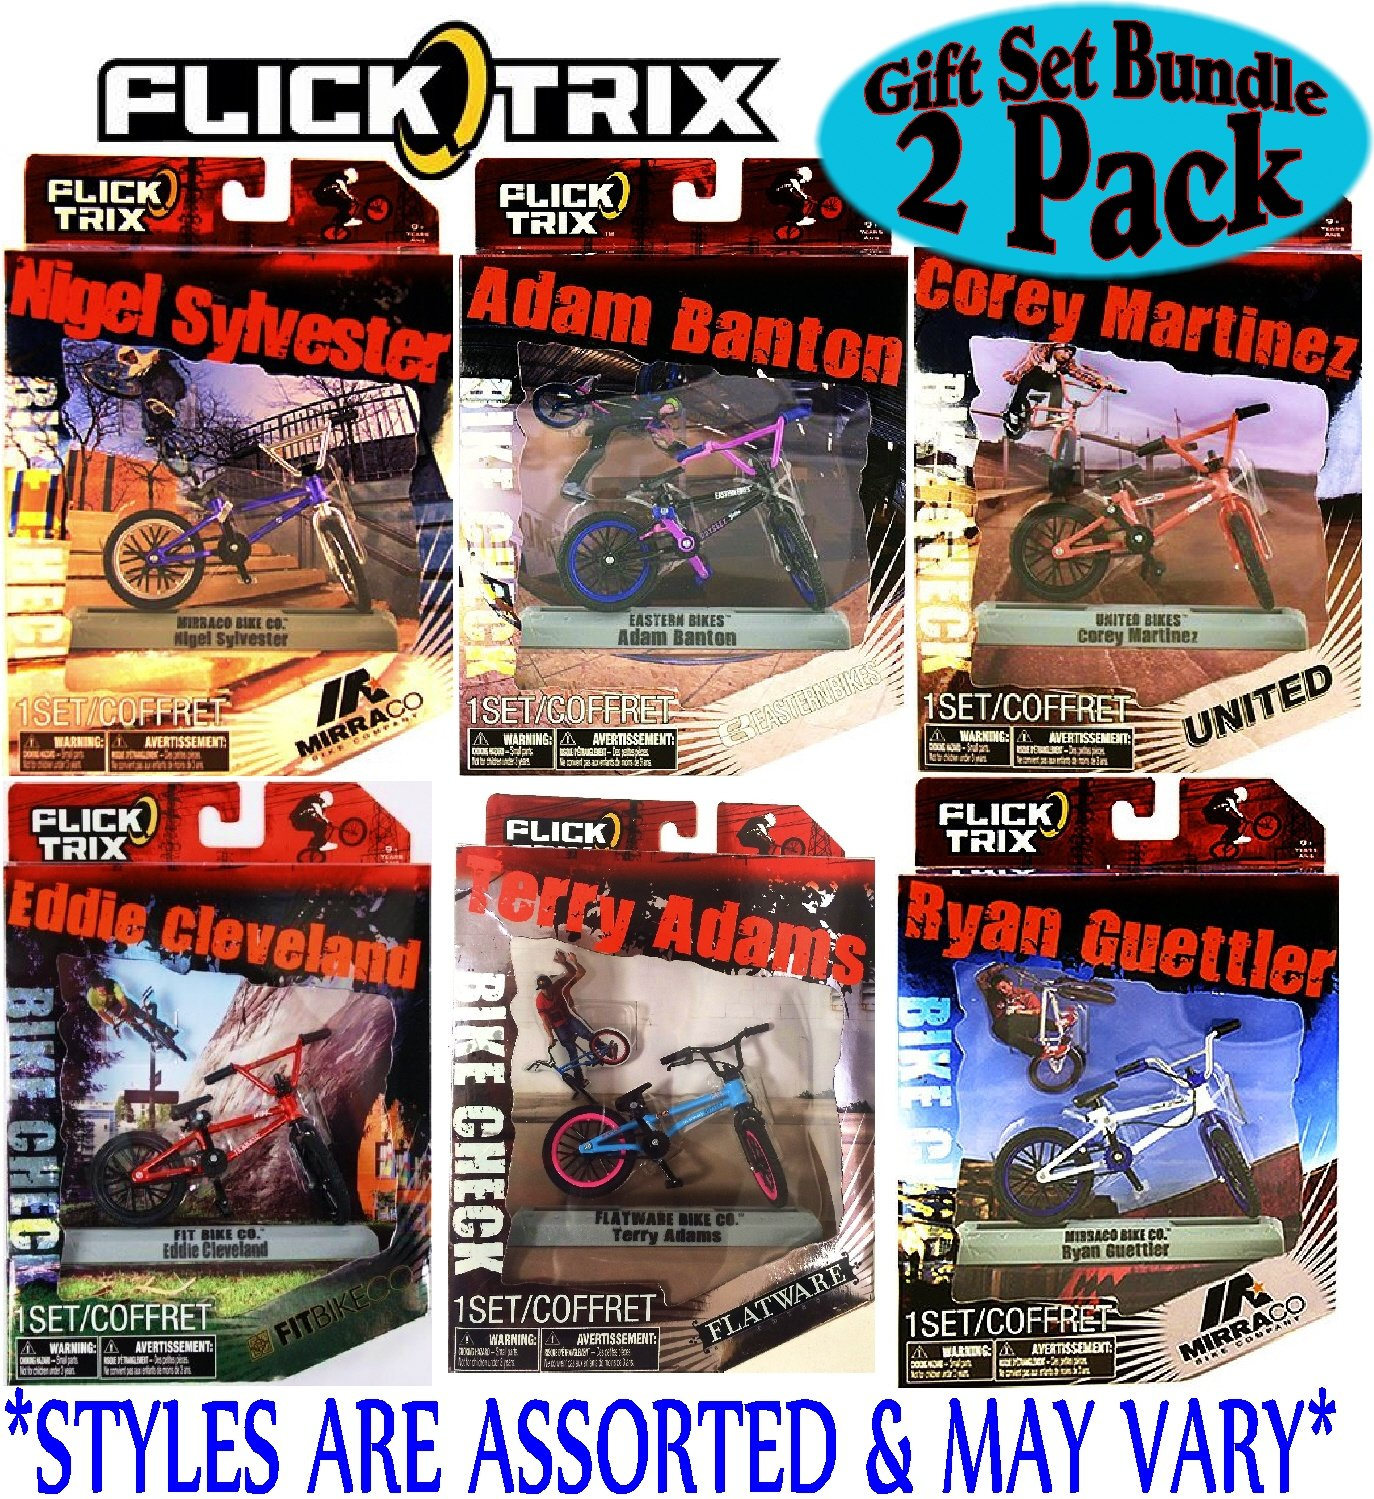 Flick Trix Deluxe Finger Bikes with Display Stand Gift Set Bundle - 2 Pack (Assorted Styles)